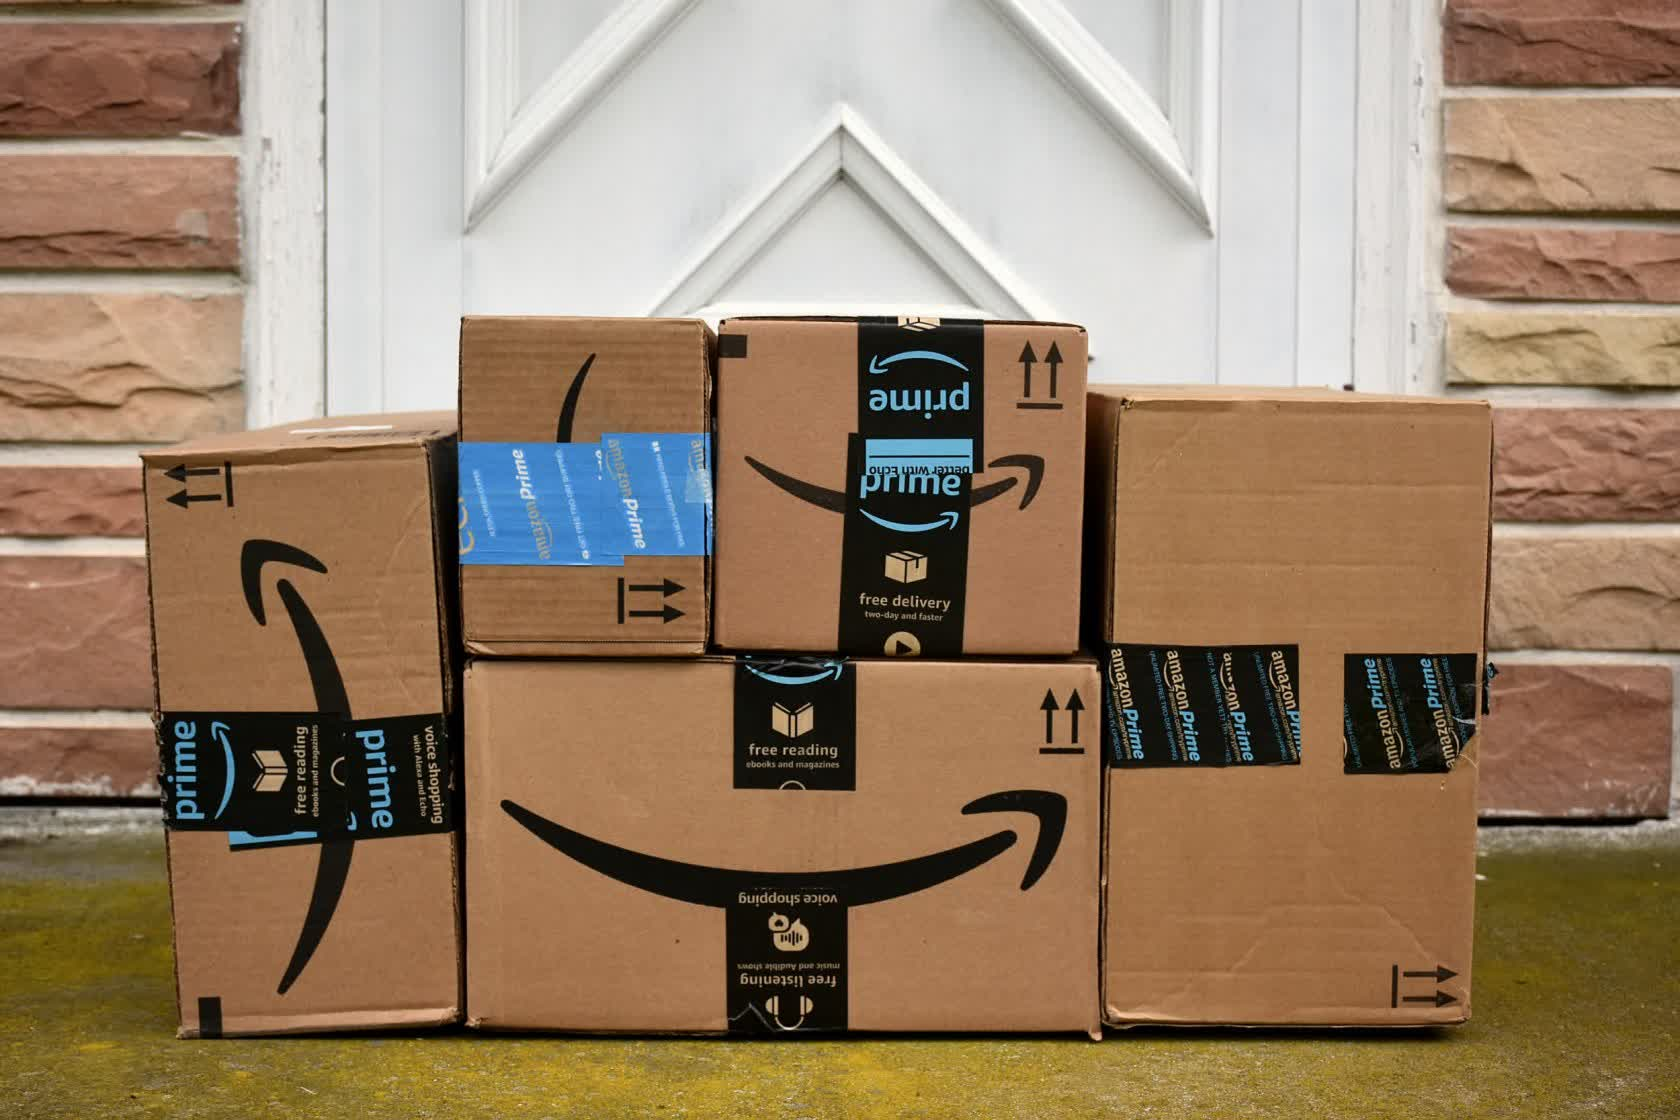 Amazon pulled in .1 billion in sales during the third quarter of 2020